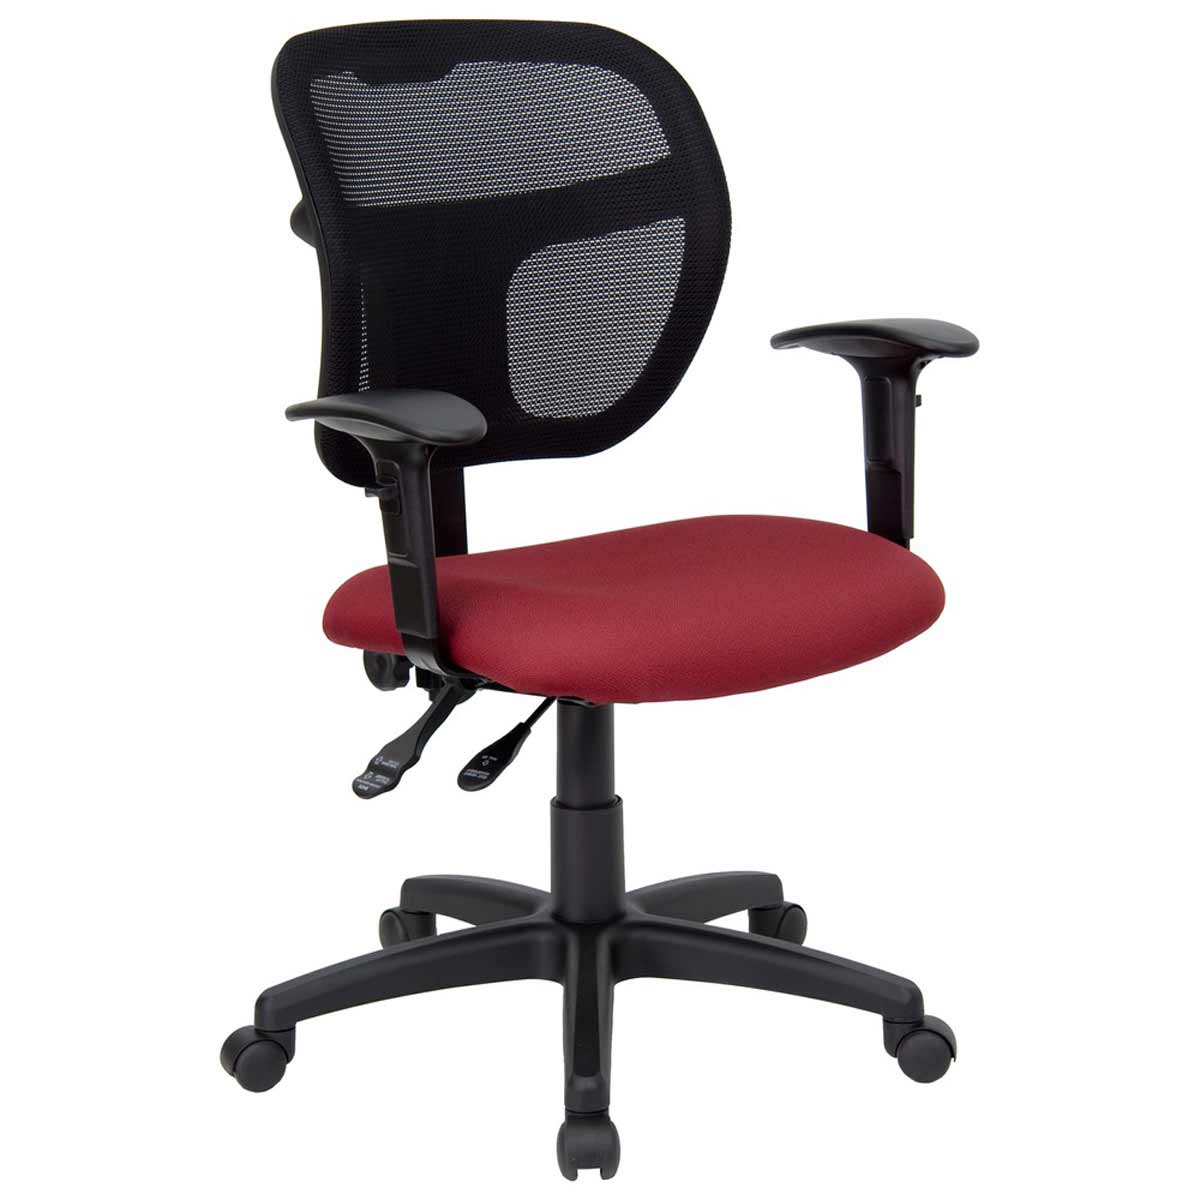 Ergonomic Chair Ergonomic Mesh Computer Chair Office Furniture